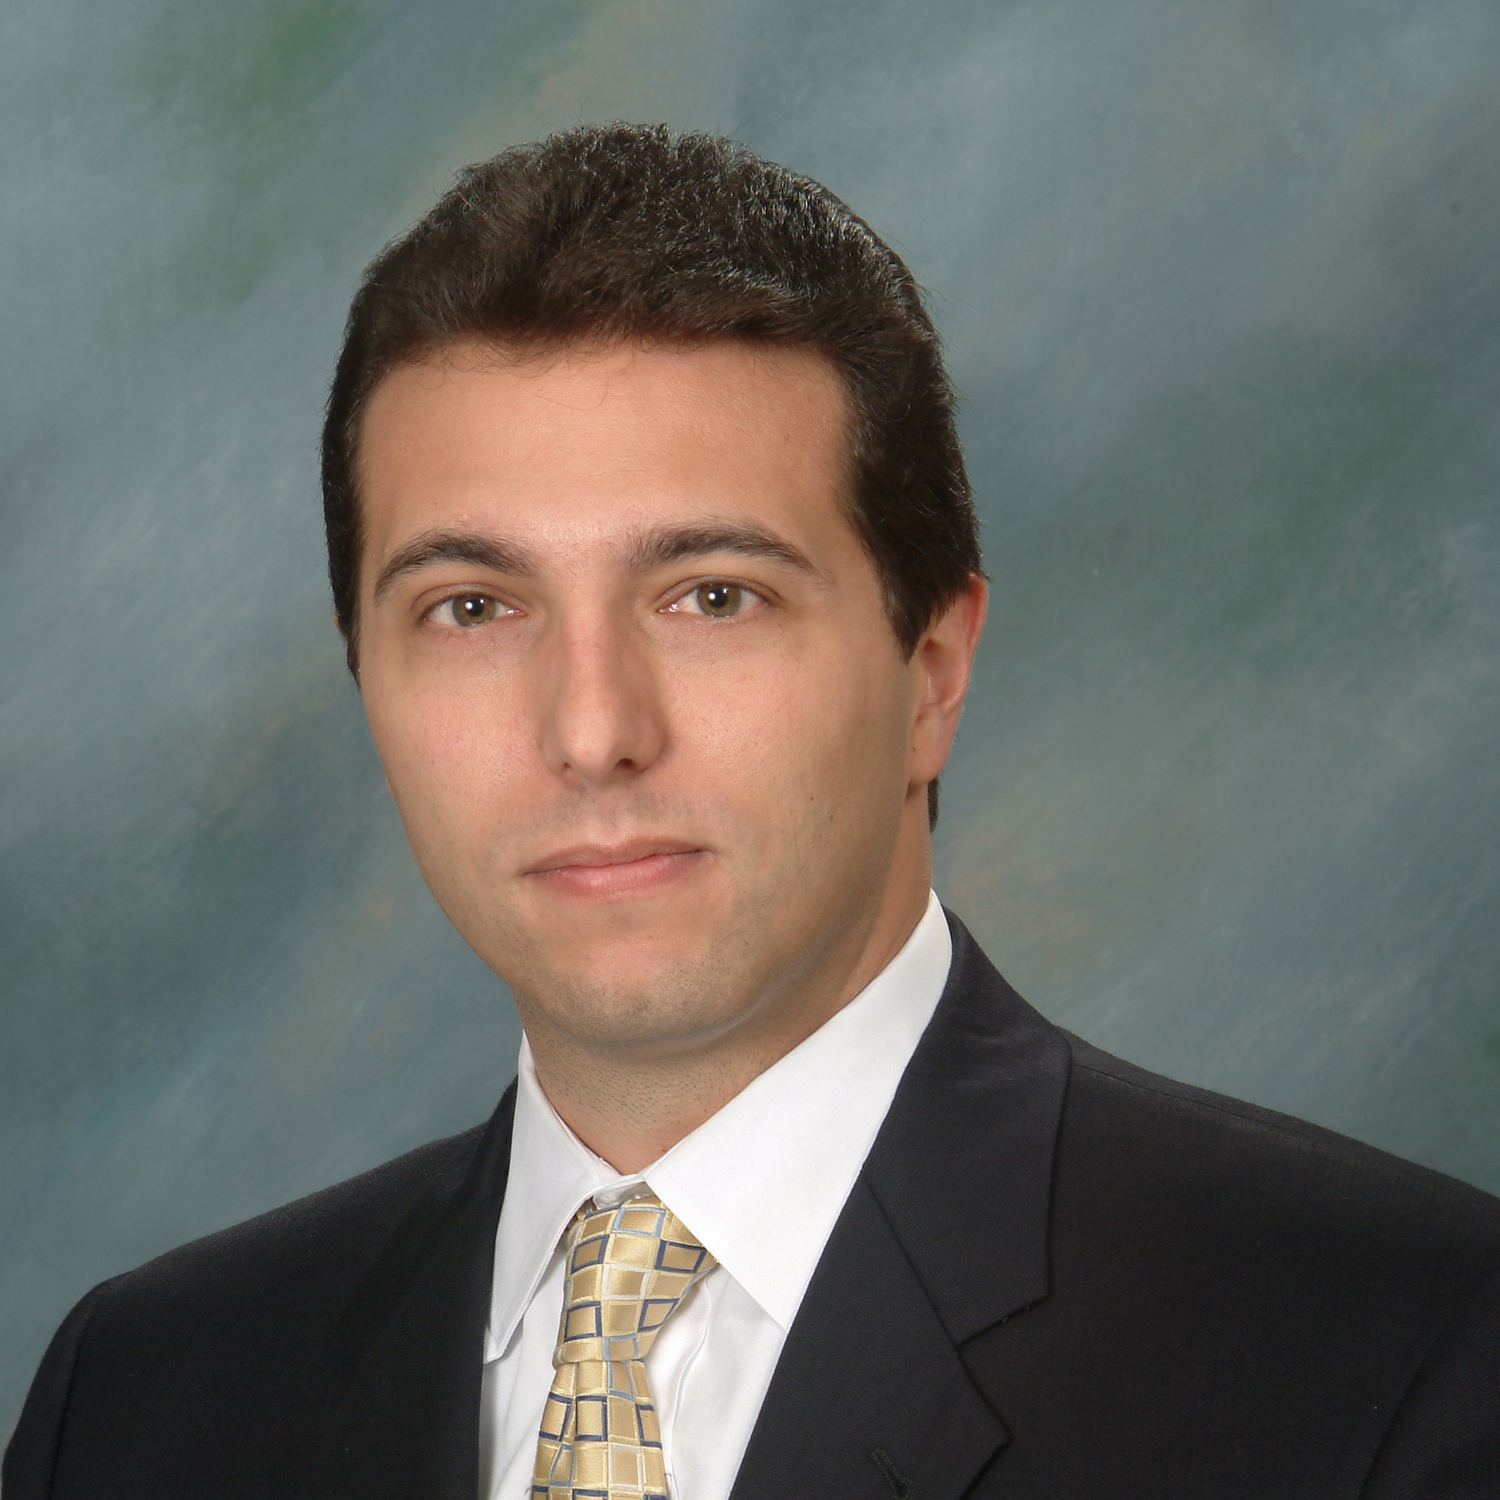 Michael Greco, financial advisor High Bridge NJ